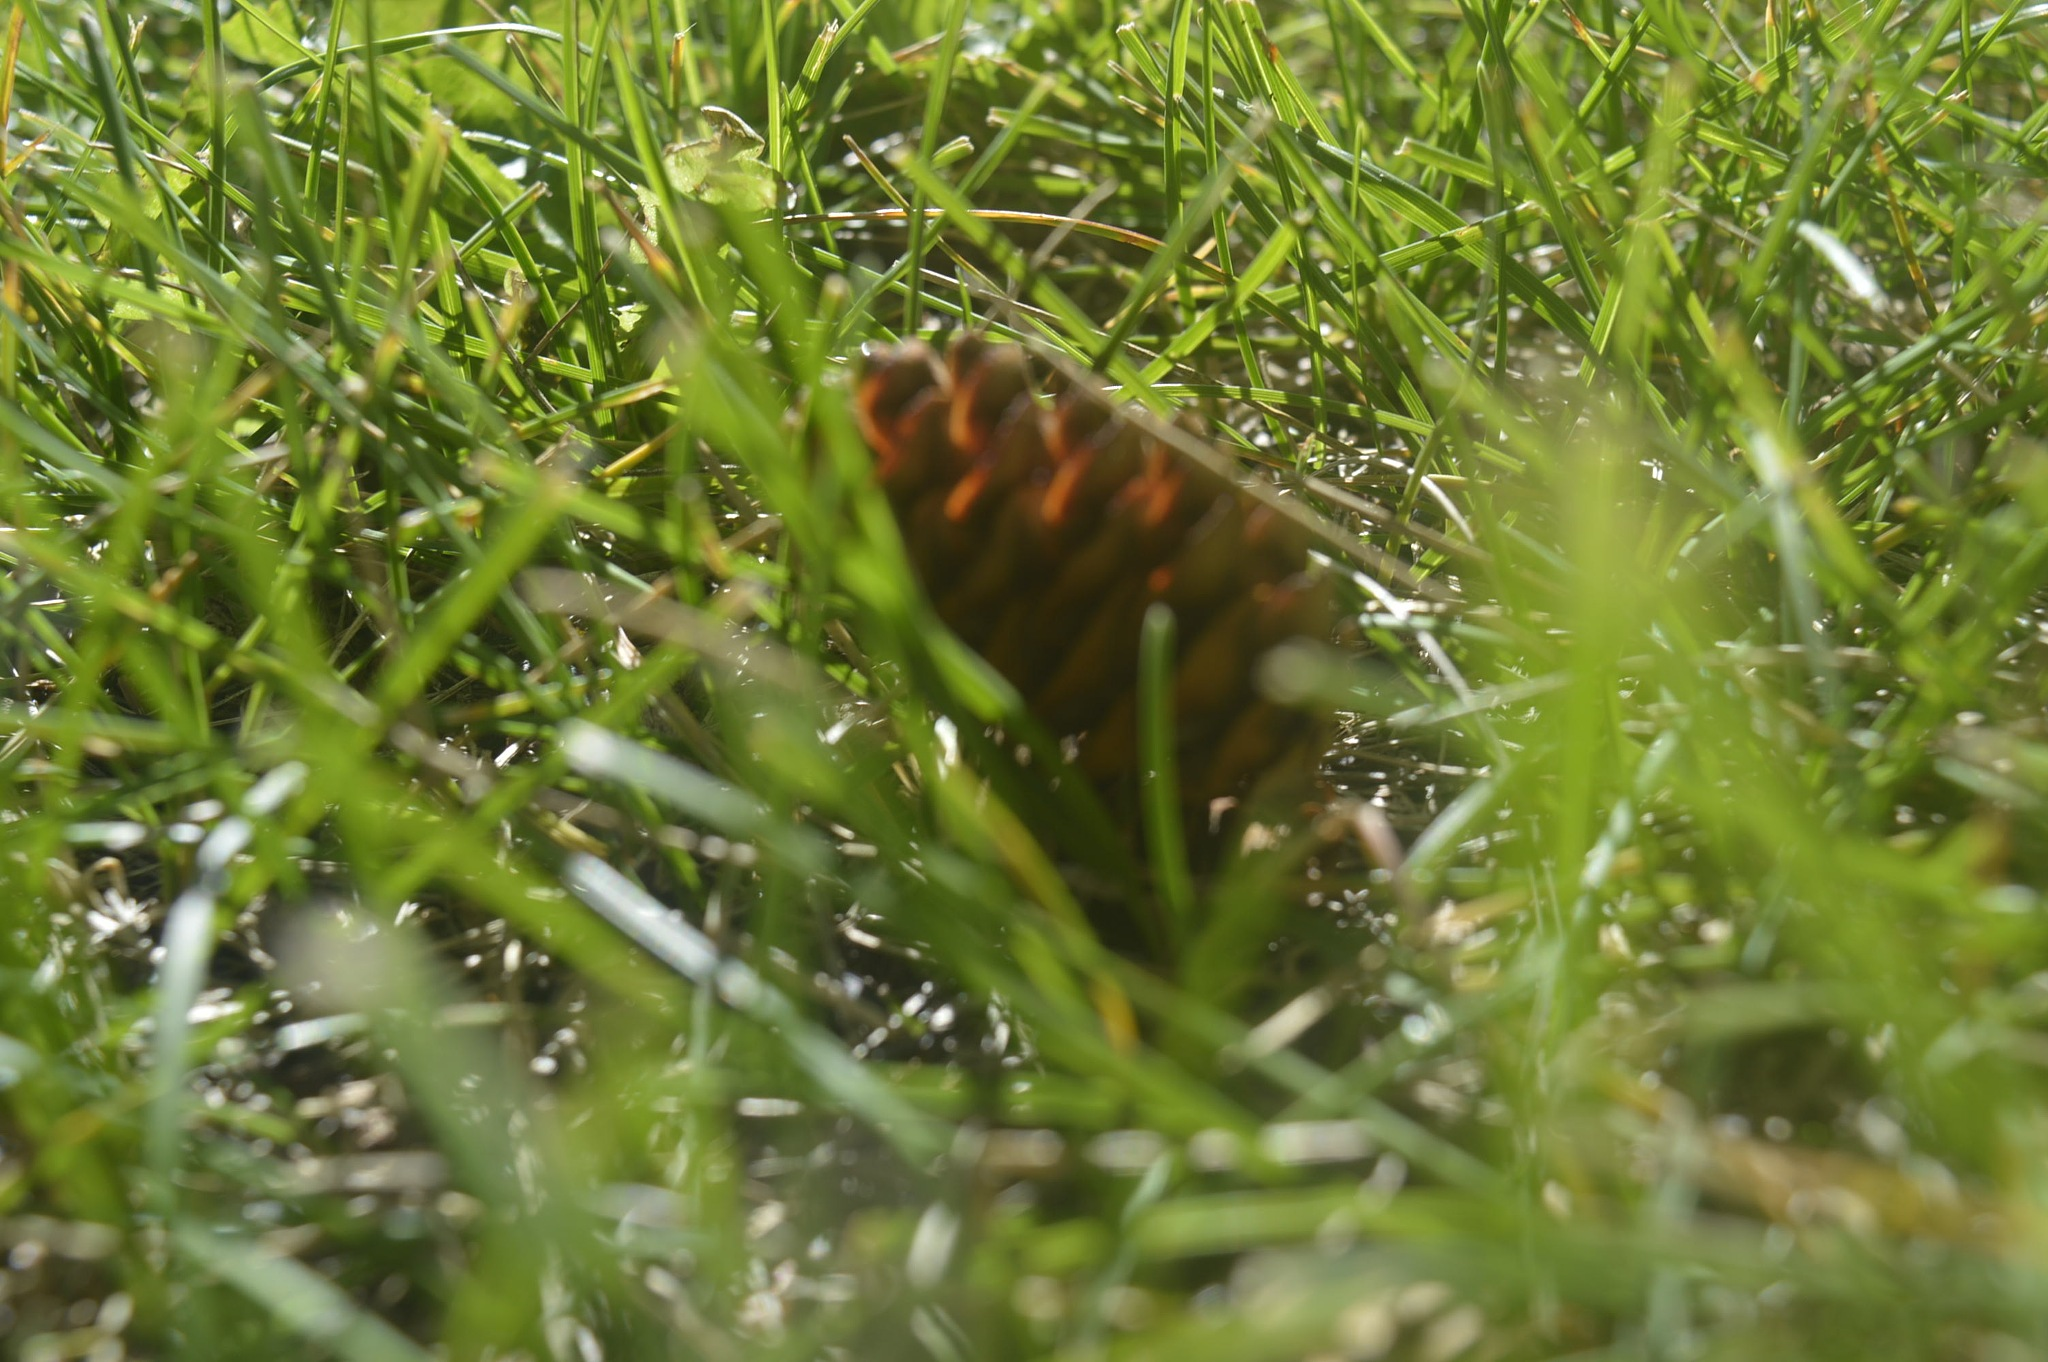 Pinecone In The Grass by Amanda Molly